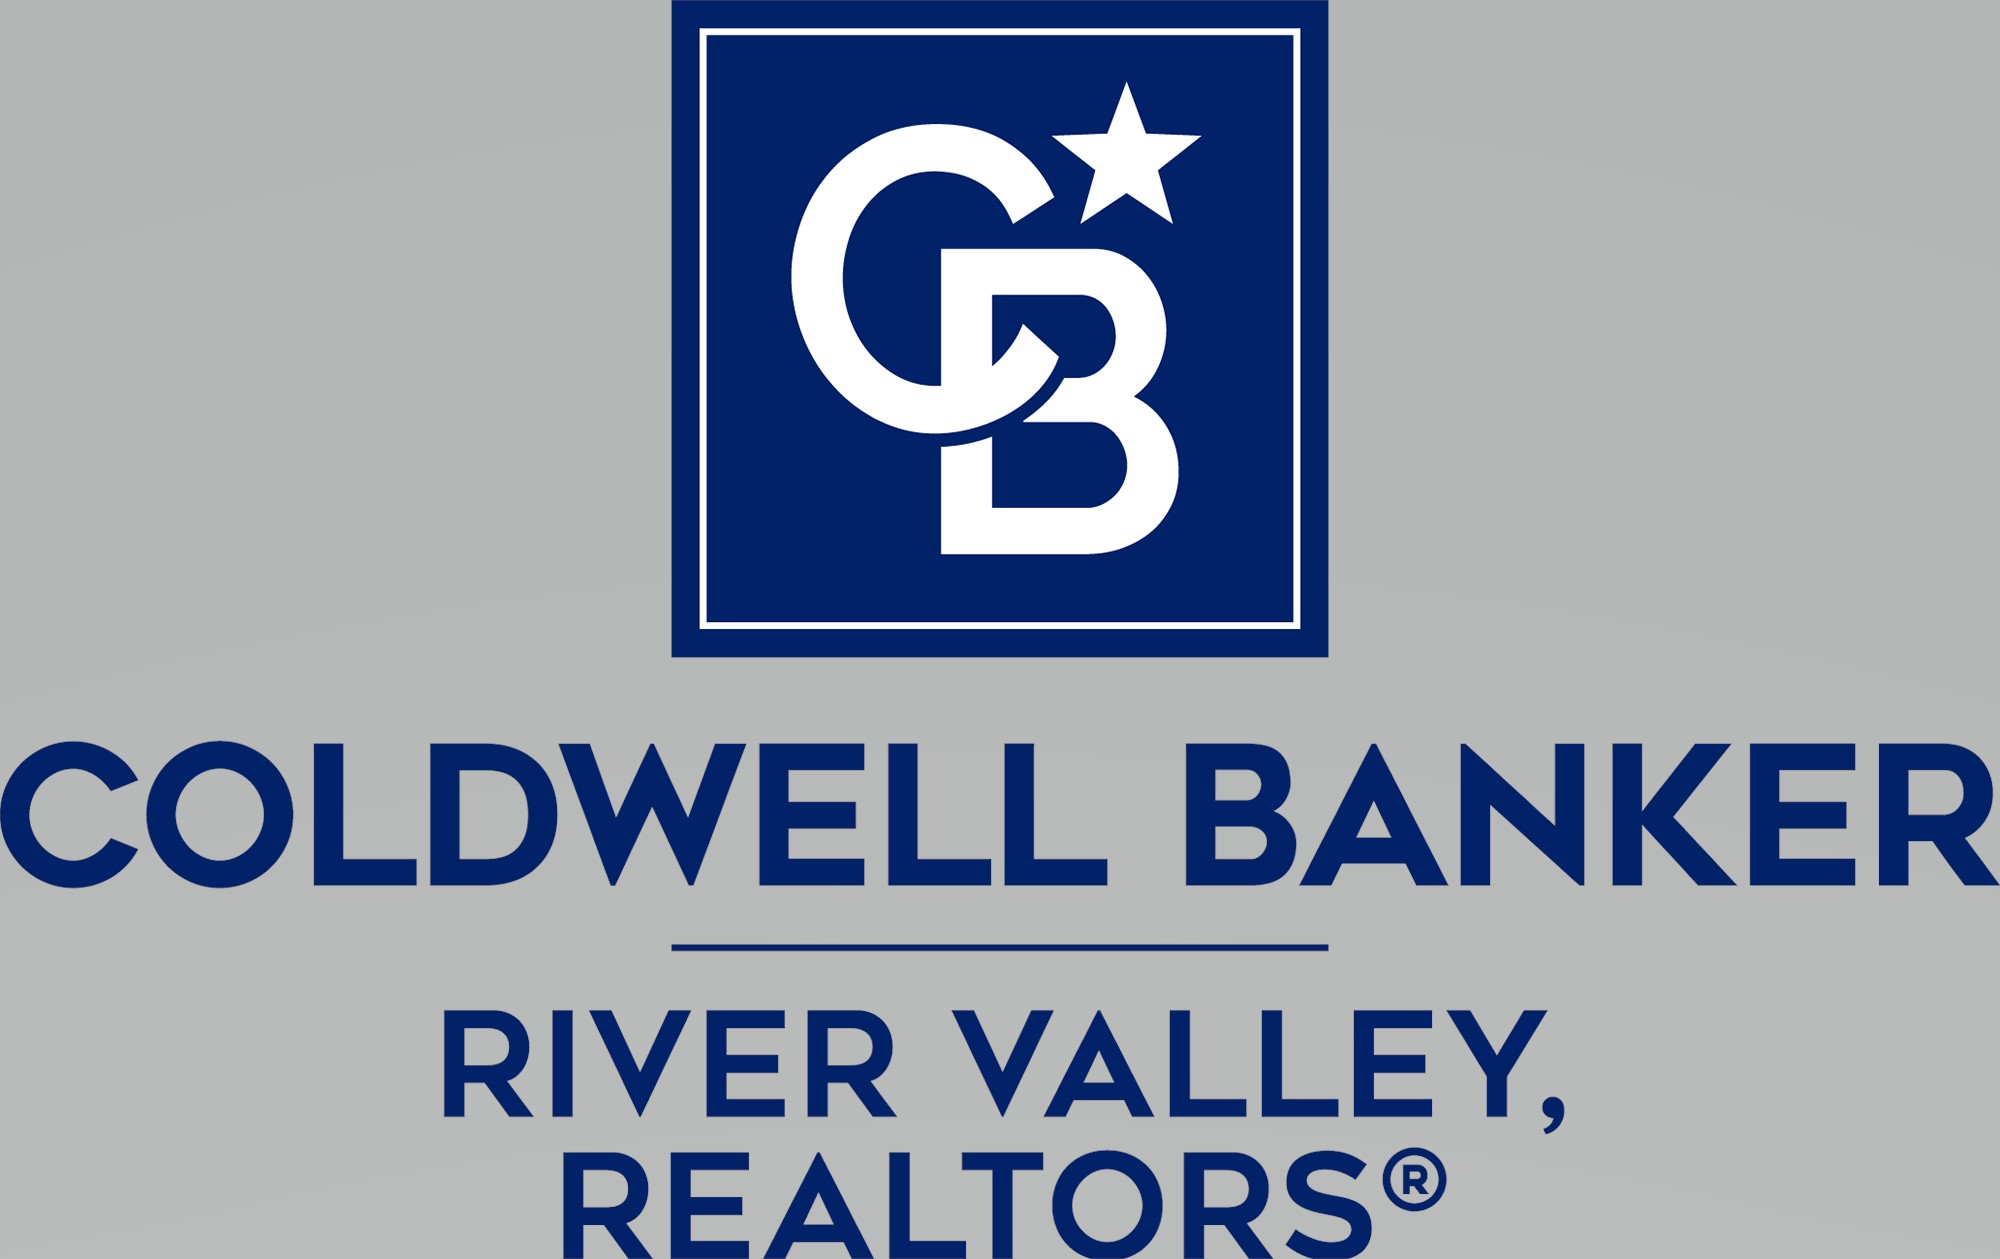 Patrick Peterson - Coldwell Banker River Valley Realtors